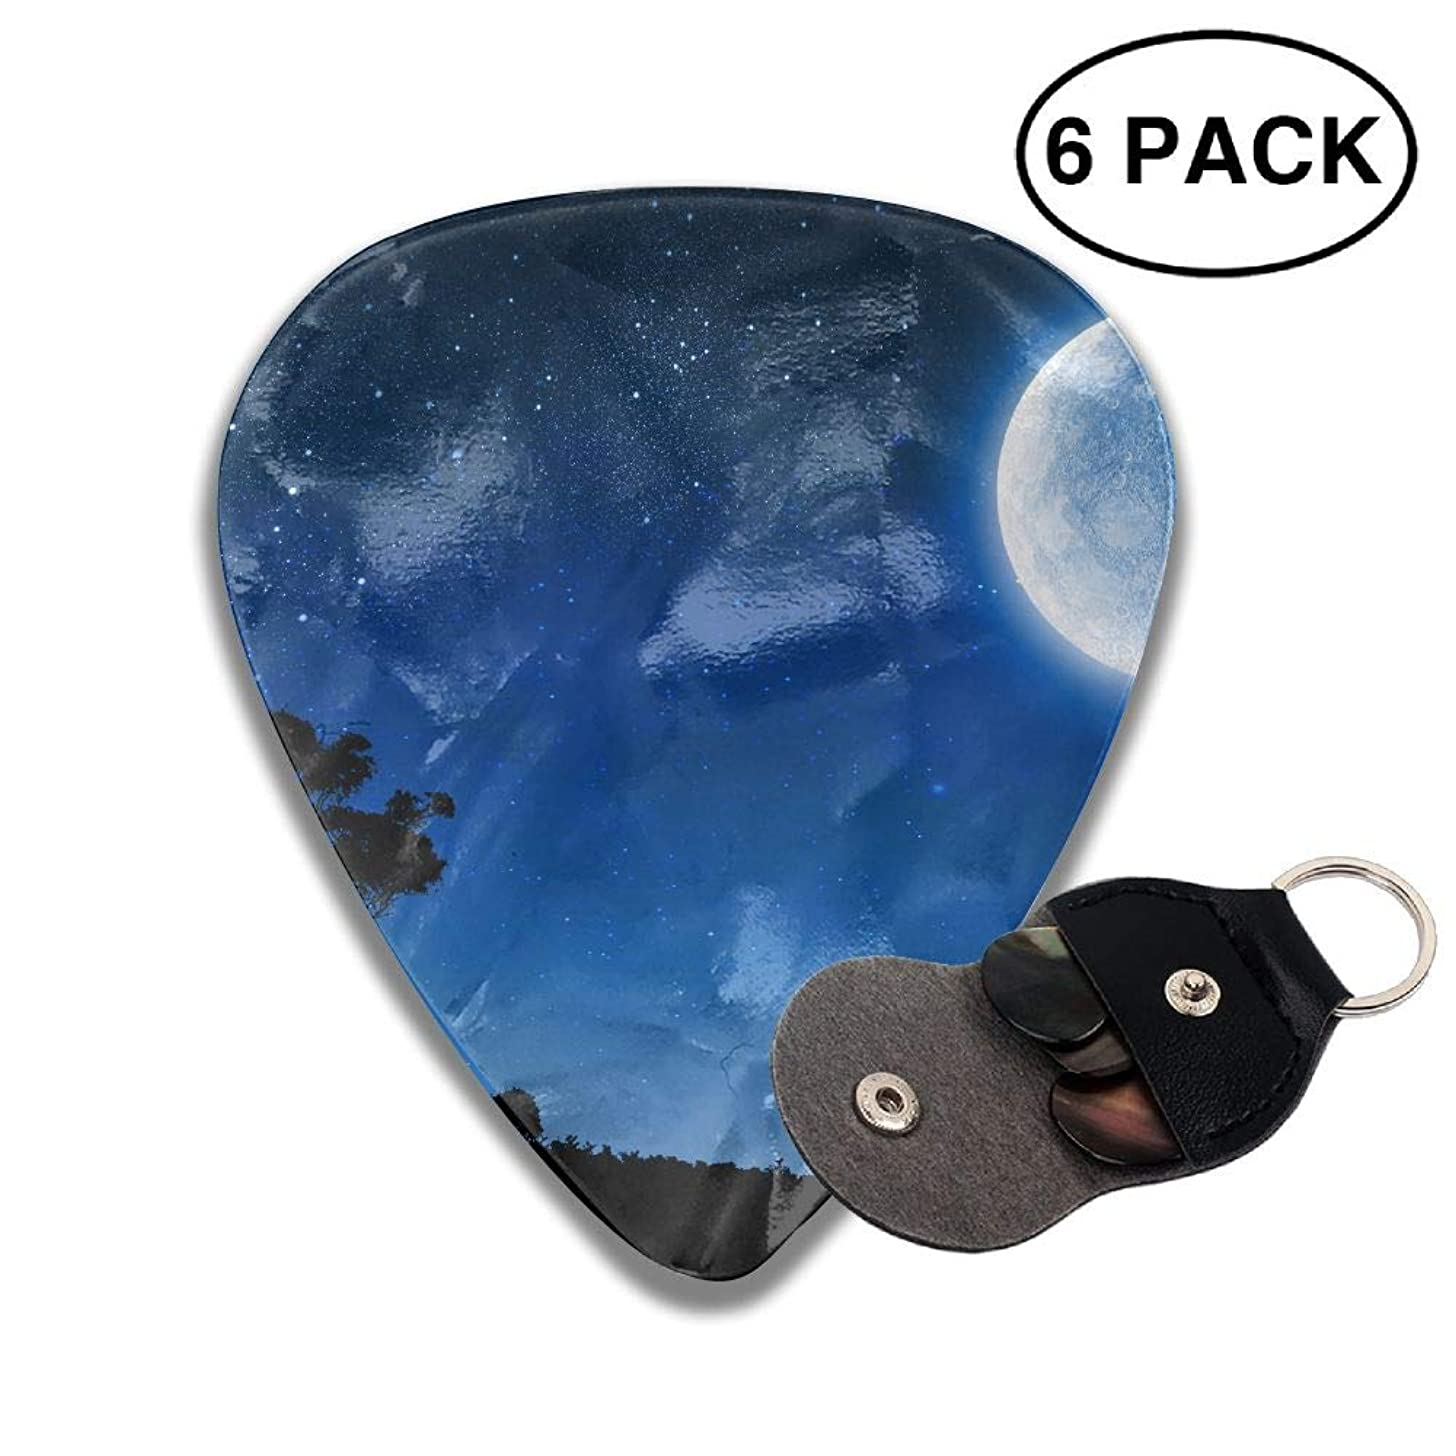 CUTEDWARF 6 Pieces of Personalized Guitar Picks Moon Print